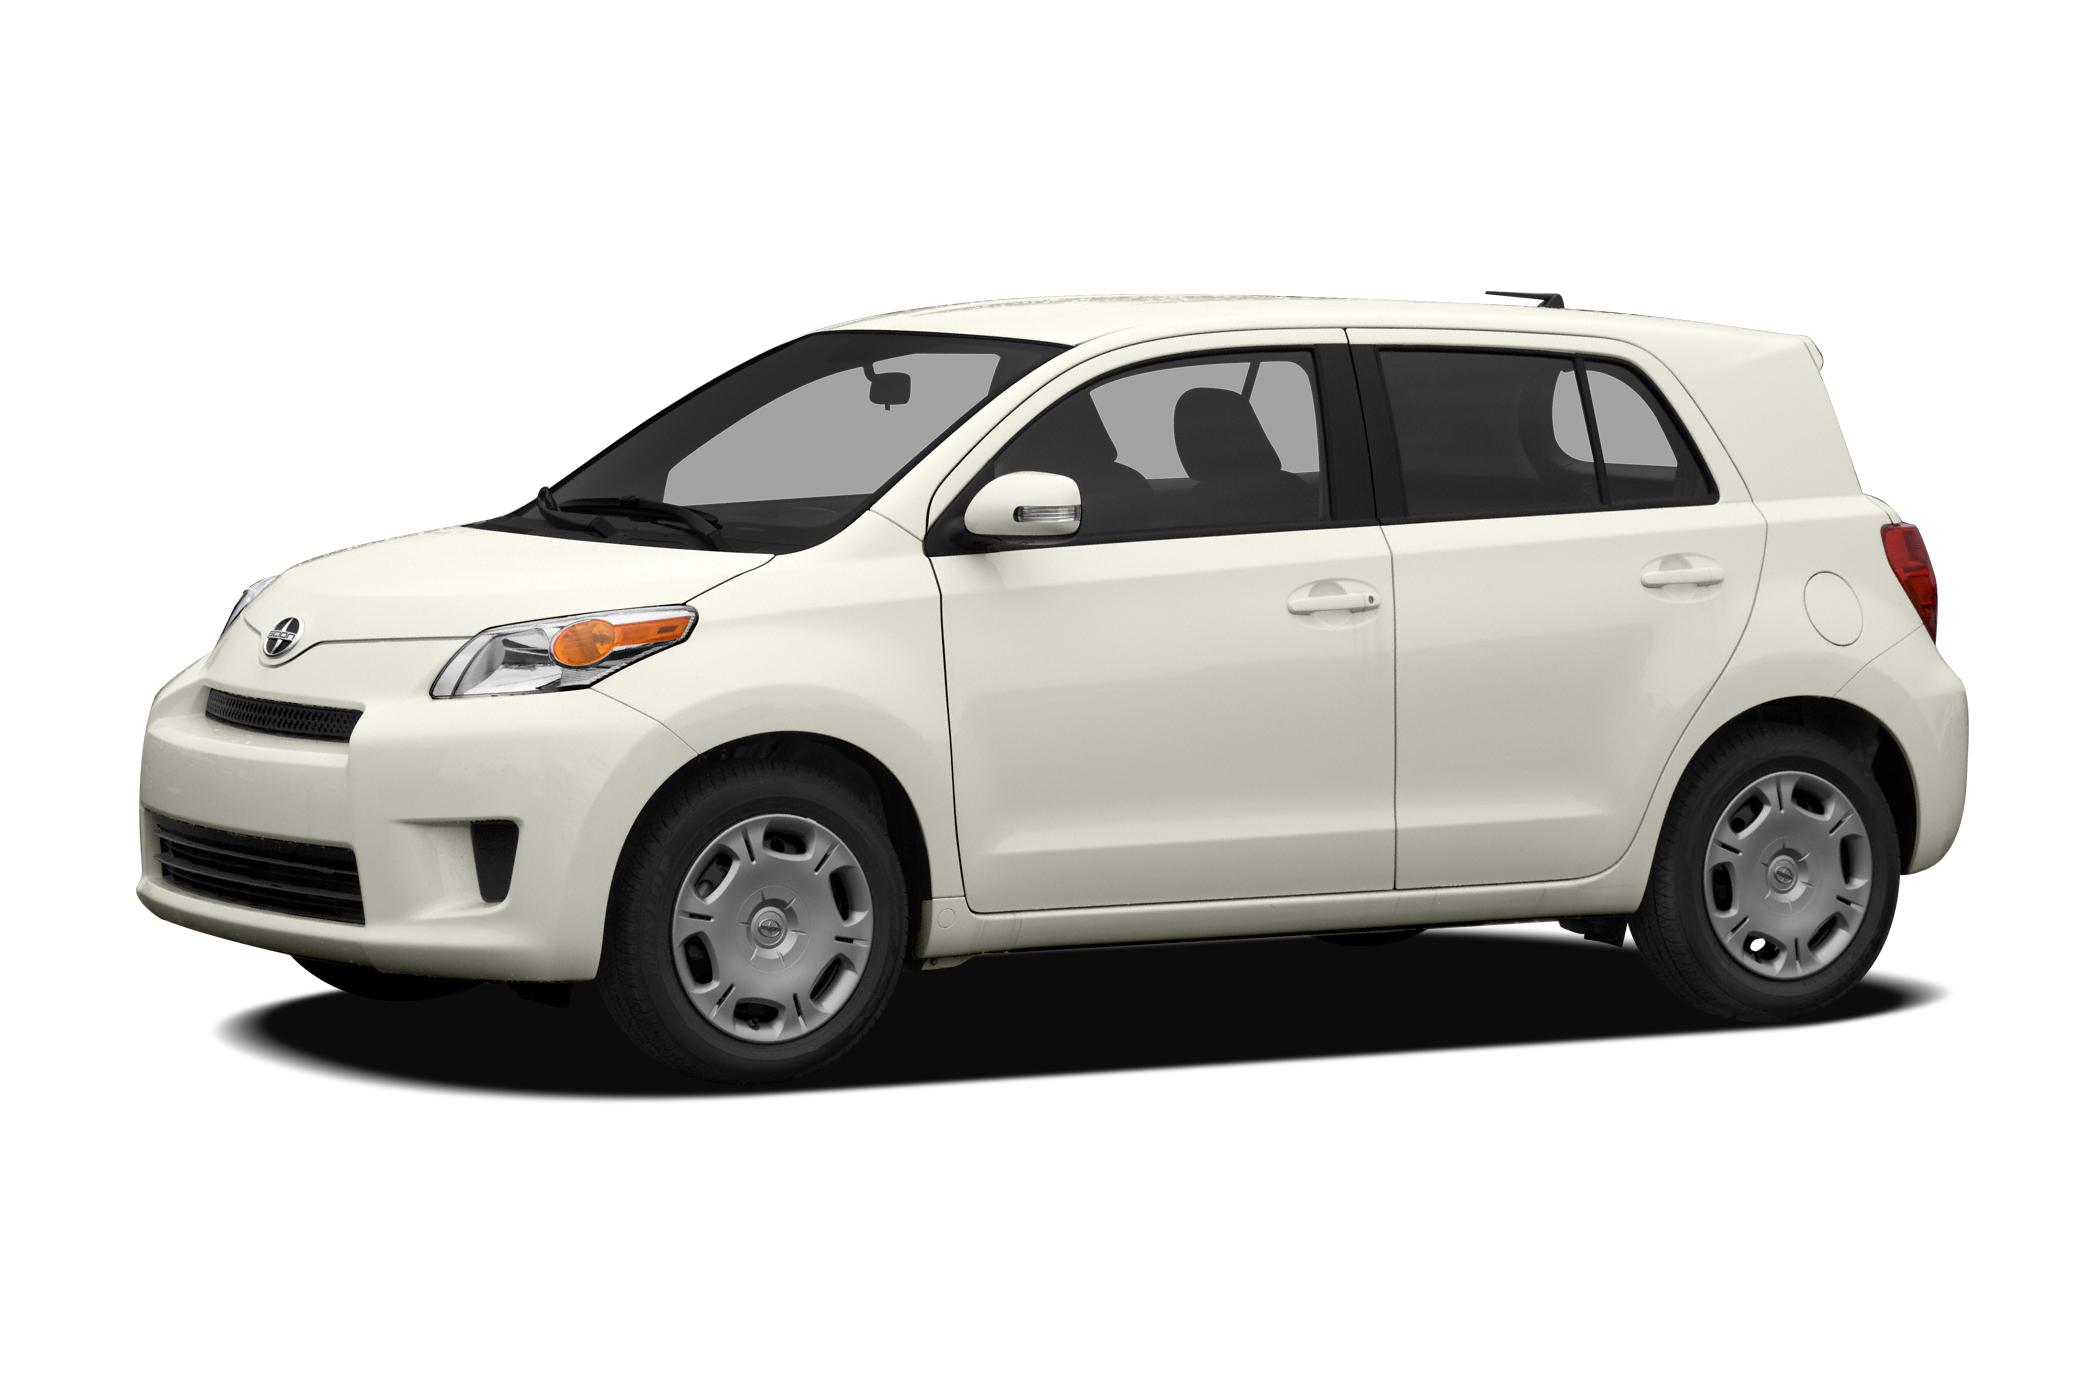 Available in 1 styles: 2008 Scion xD 4dr Hatchback shown